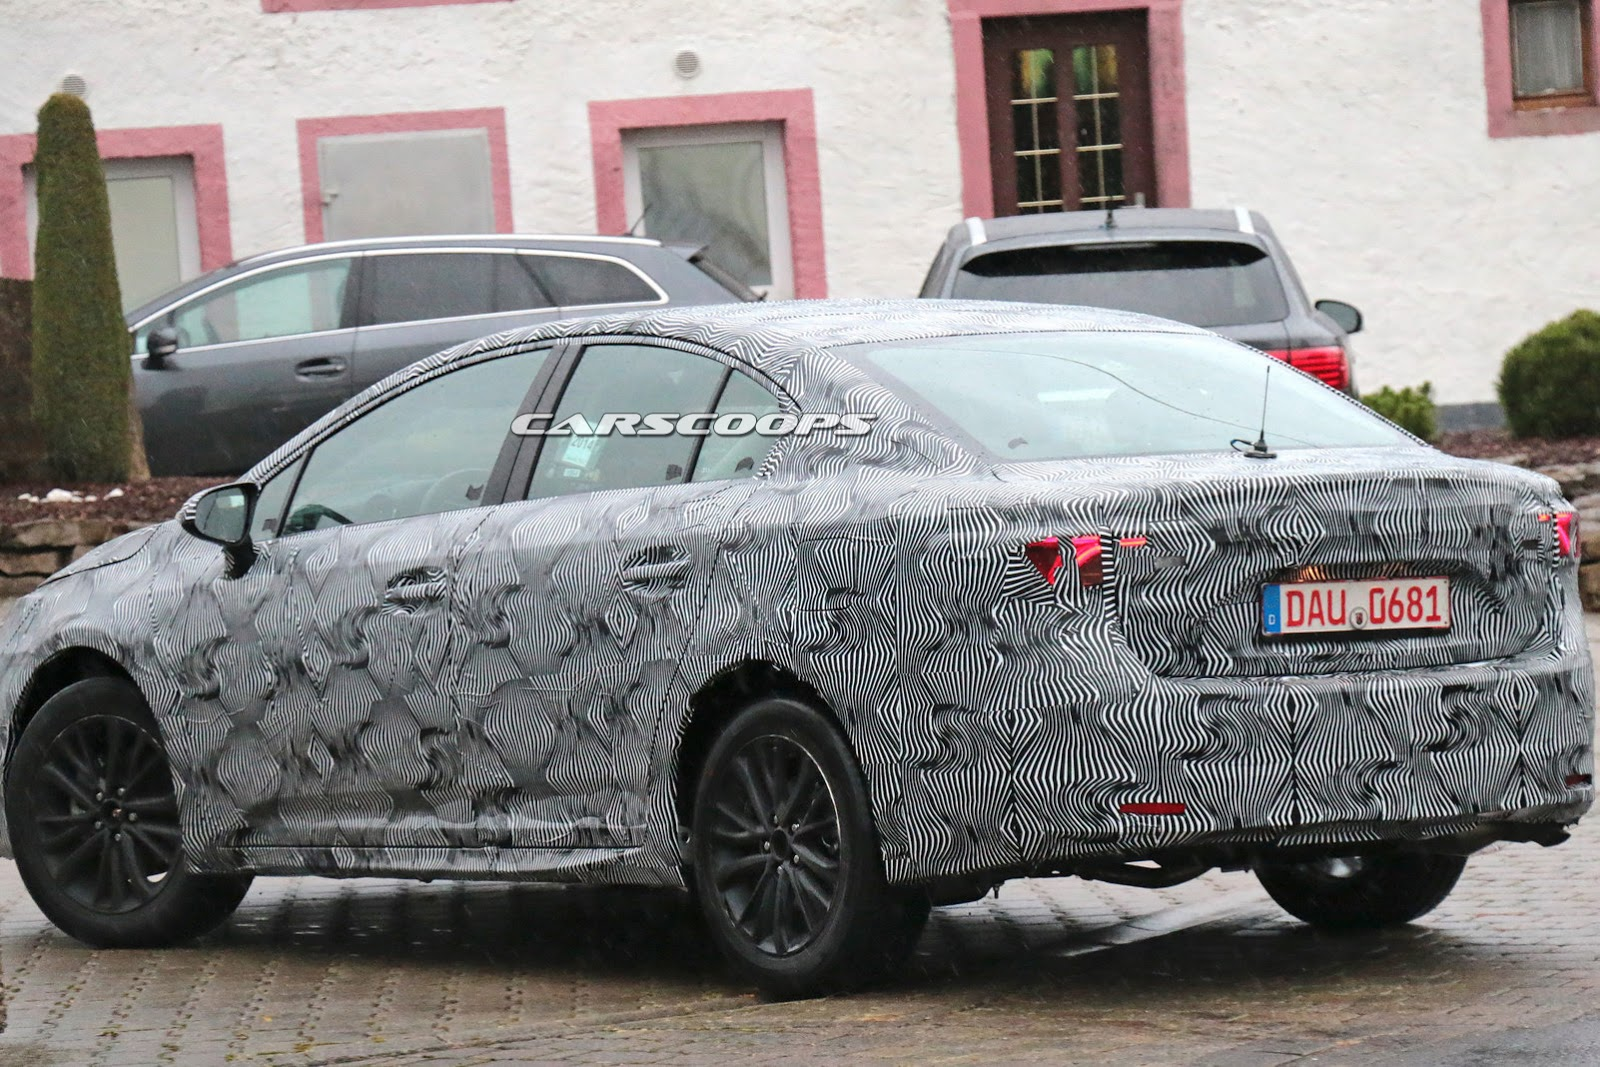 toyota spied testing camouflaged avensis is it a test mule or a facelift carscoops. Black Bedroom Furniture Sets. Home Design Ideas